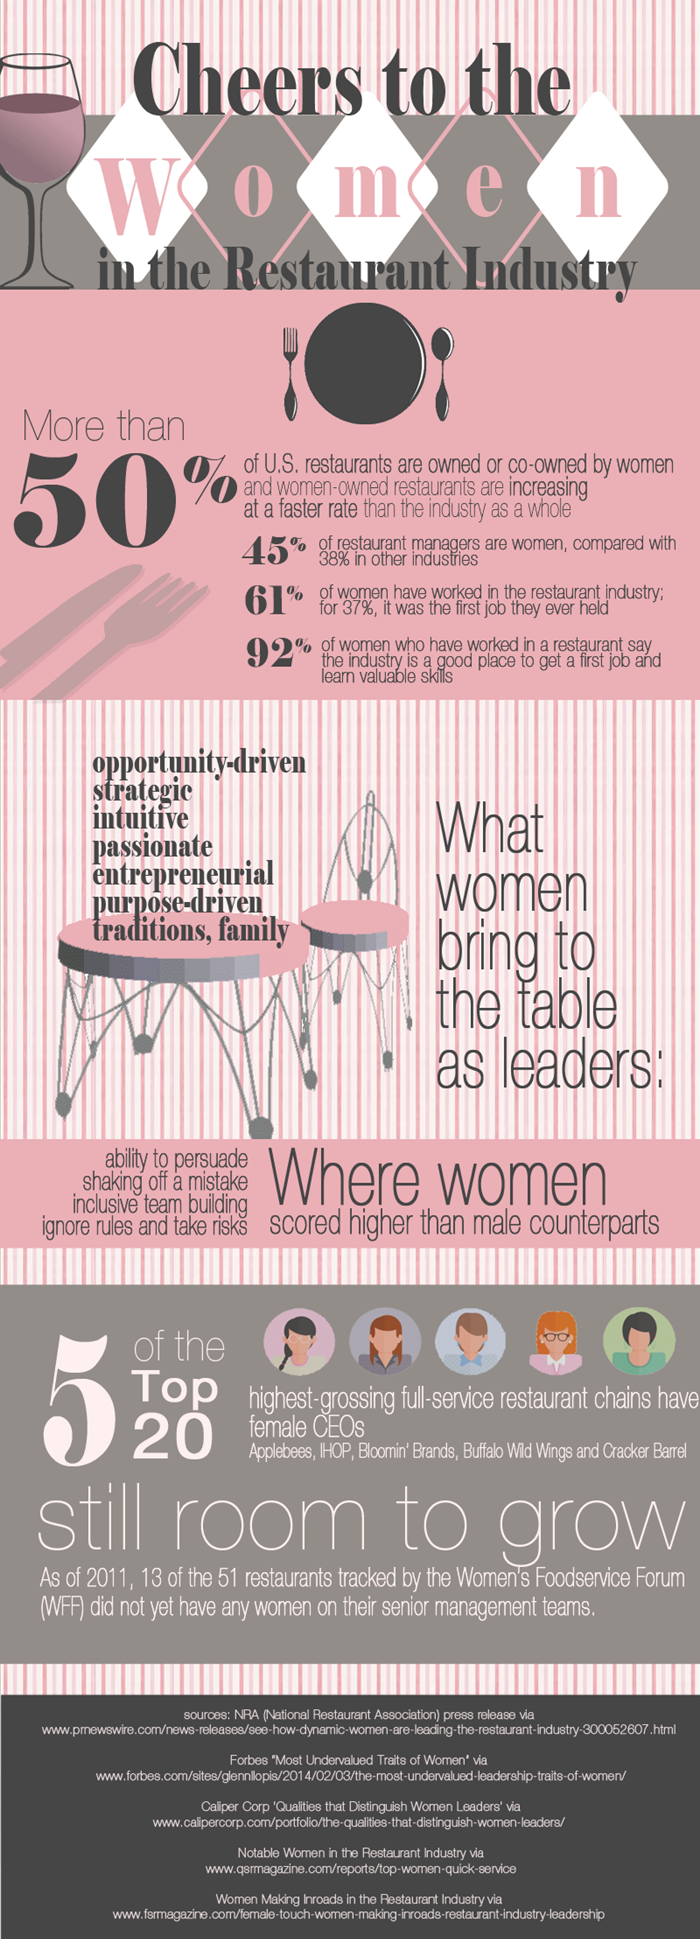 Cheers to the Women of the Restaurant Industry [Infographic]